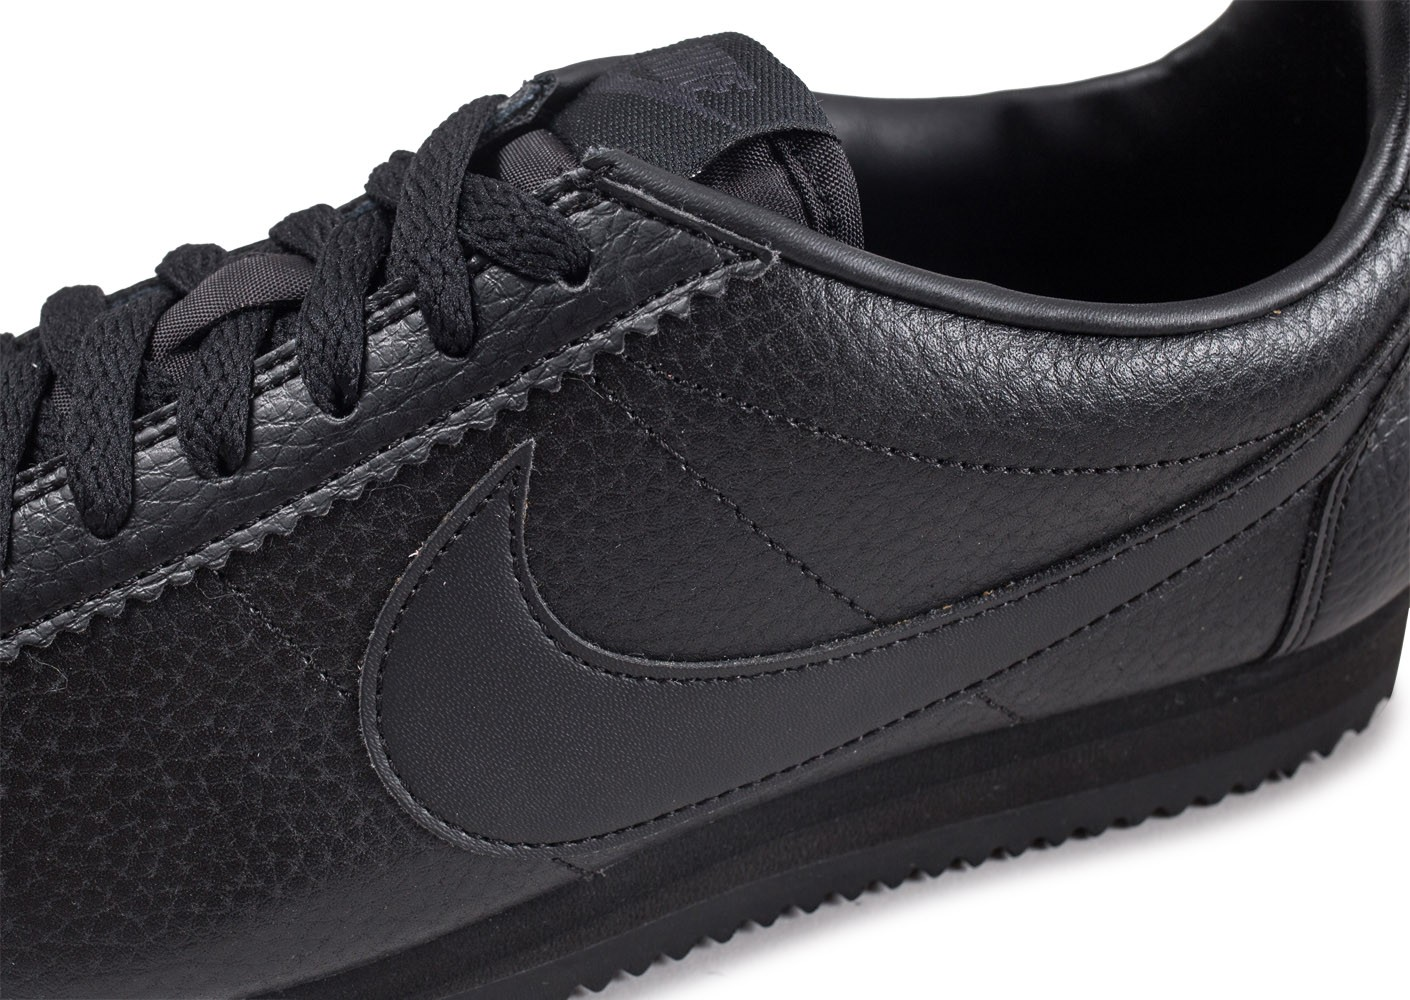 low priced b1090 9f59f ... Chaussures Nike Classic Cortez Leather noire vue dessus